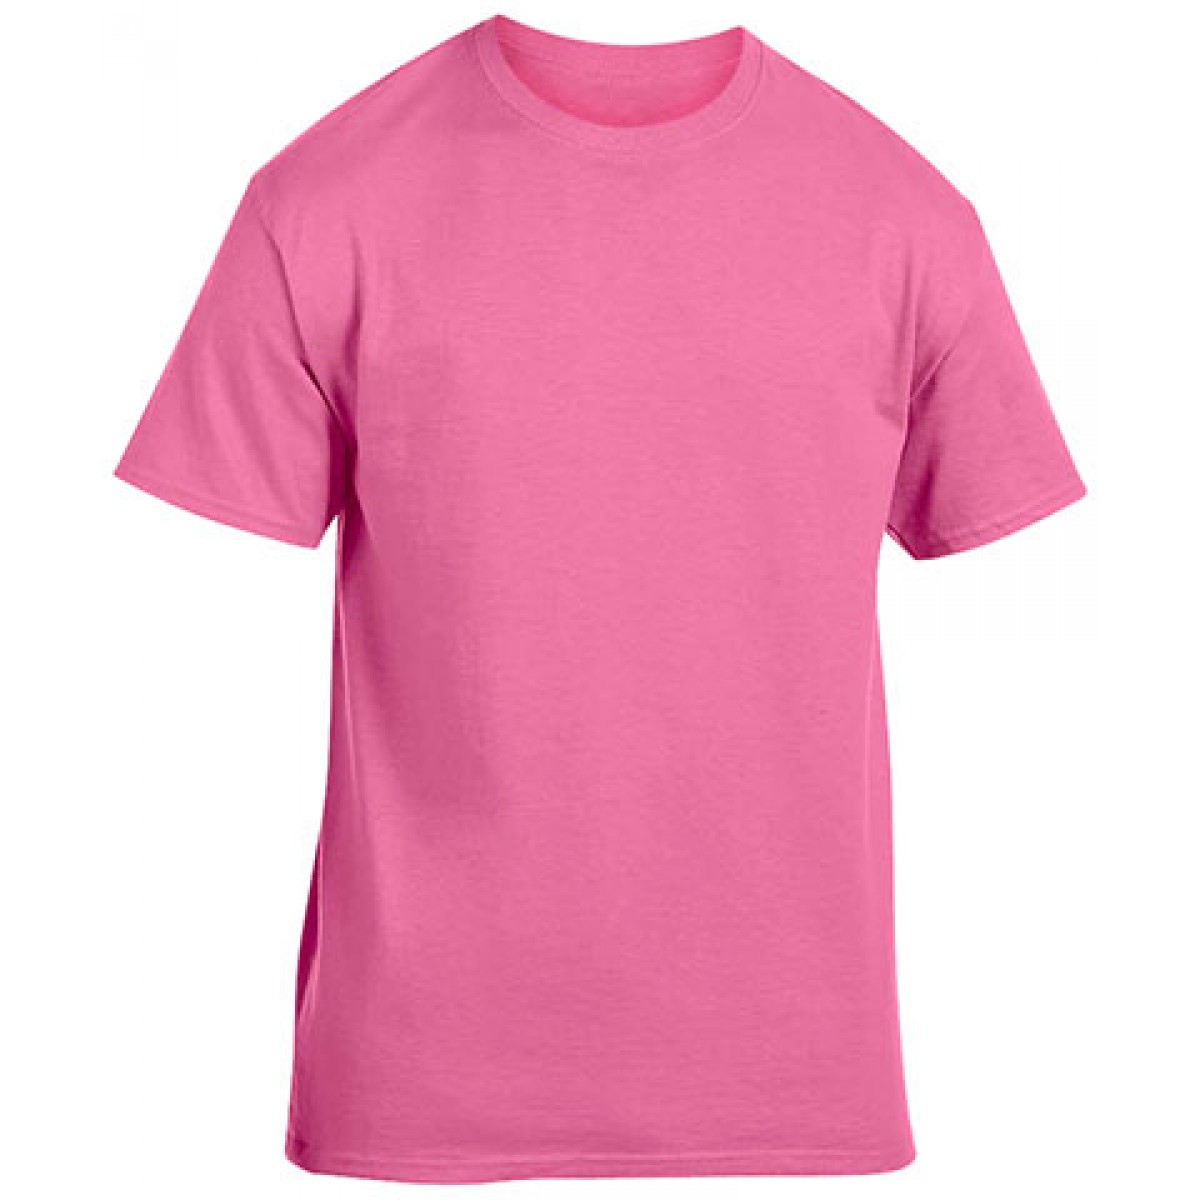 Cotton Short Sleeve T-Shirt-Safety Pink-2XL